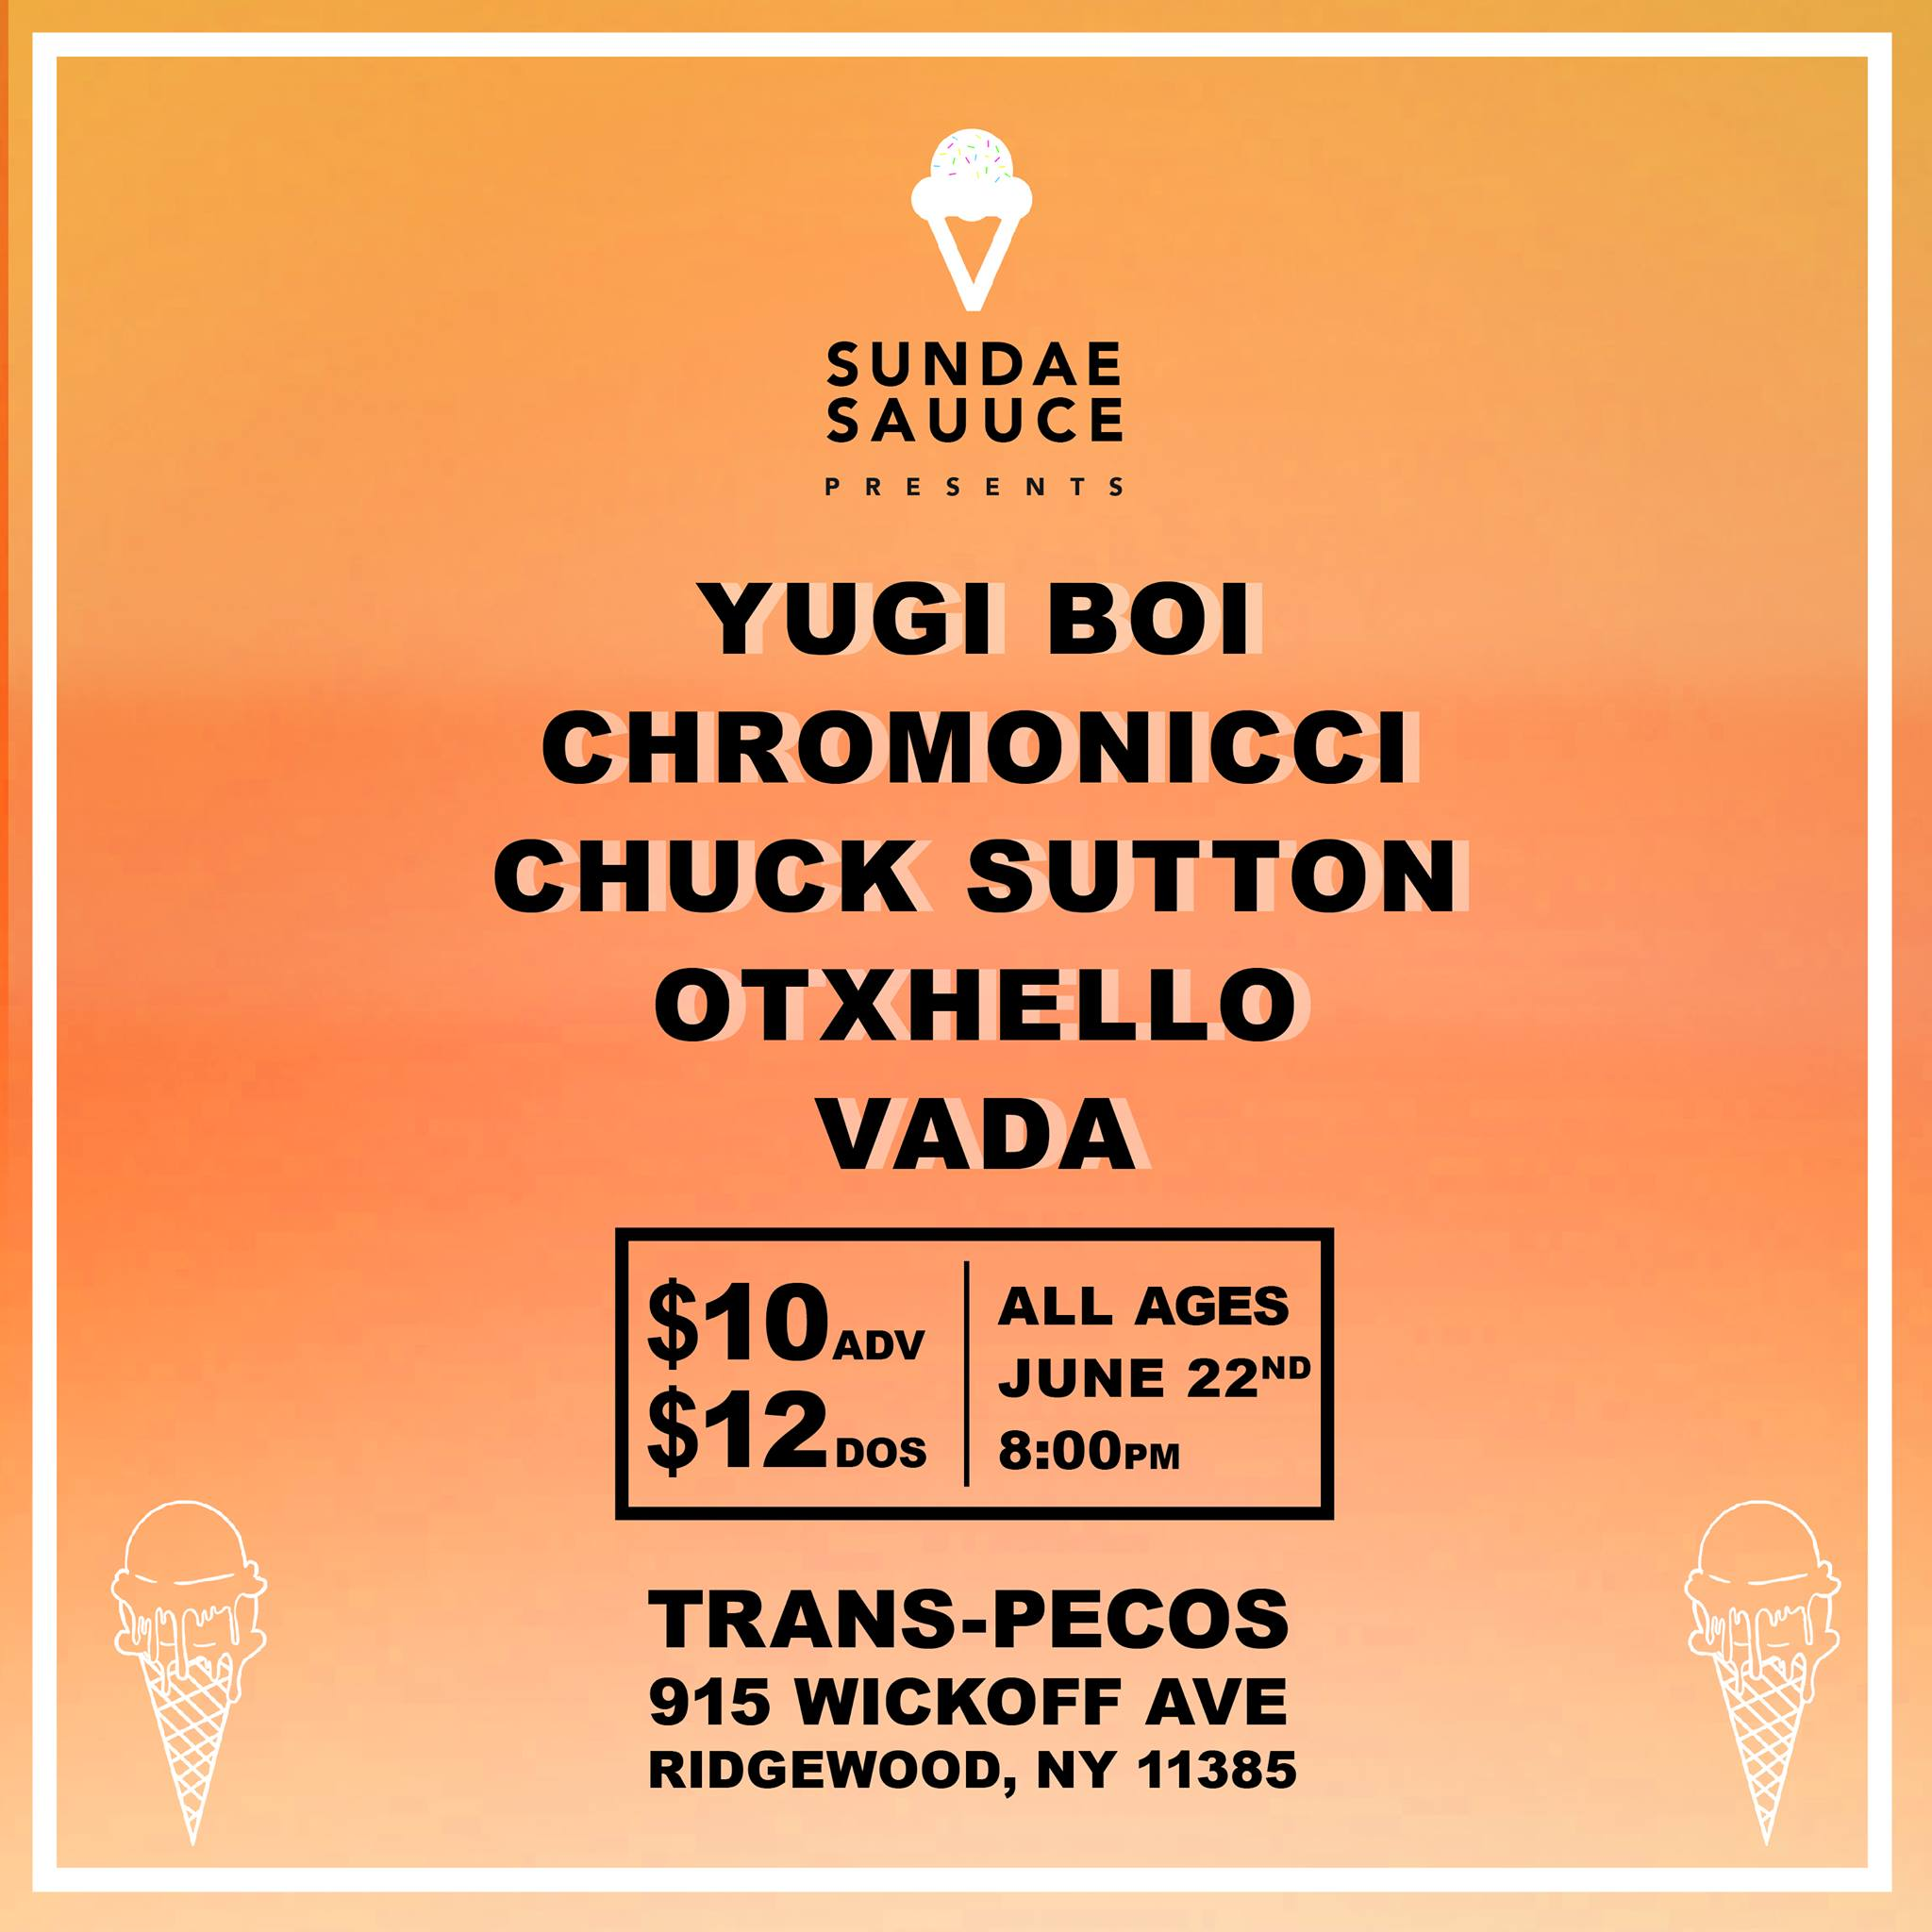 Sundae Sauuce Presents another sauucey showcase. This is one filled with only amazing acts from start to finish. It'll be straight sauuce all night long!  Yugi boi:  https://soundcloud.com/yugiboi   Chromonicci:  https://soundcloud.com/nicciwho   Otxhello:  https://soundcloud.com/othellohou   Vada:  https://soundcloud.com/officialvada   All Ages Trans-Pecos